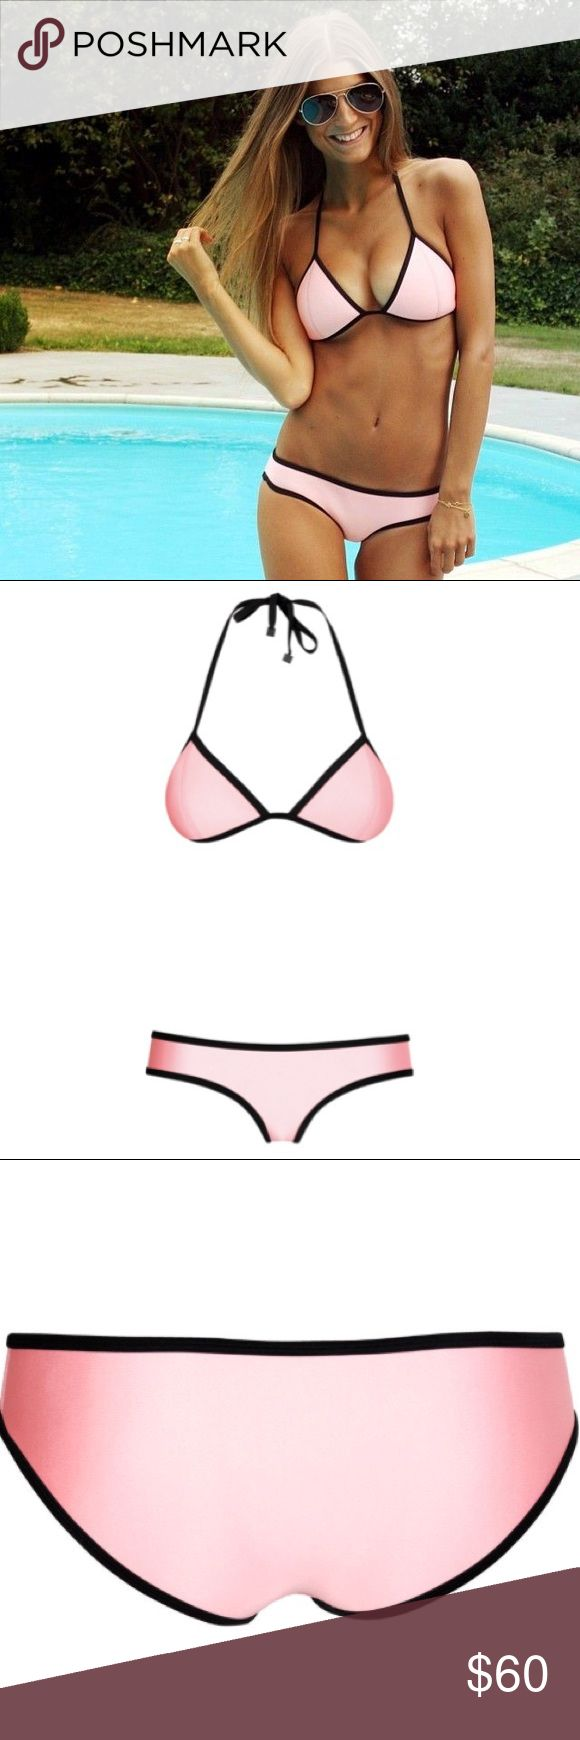 Triangl Chloe Neoprene Bikini in California Coral Triangle Neoprene bikini in pastel pink. Fixed triangle top. Adjustable back and neck ties. Hipster boyleg bottom. Medium coverage. Fully lined, will not go transparent when wet. Worn once - in great condition! Top Size: Large; Bottom Size: Medium. triangl swimwear Swim Bikinis